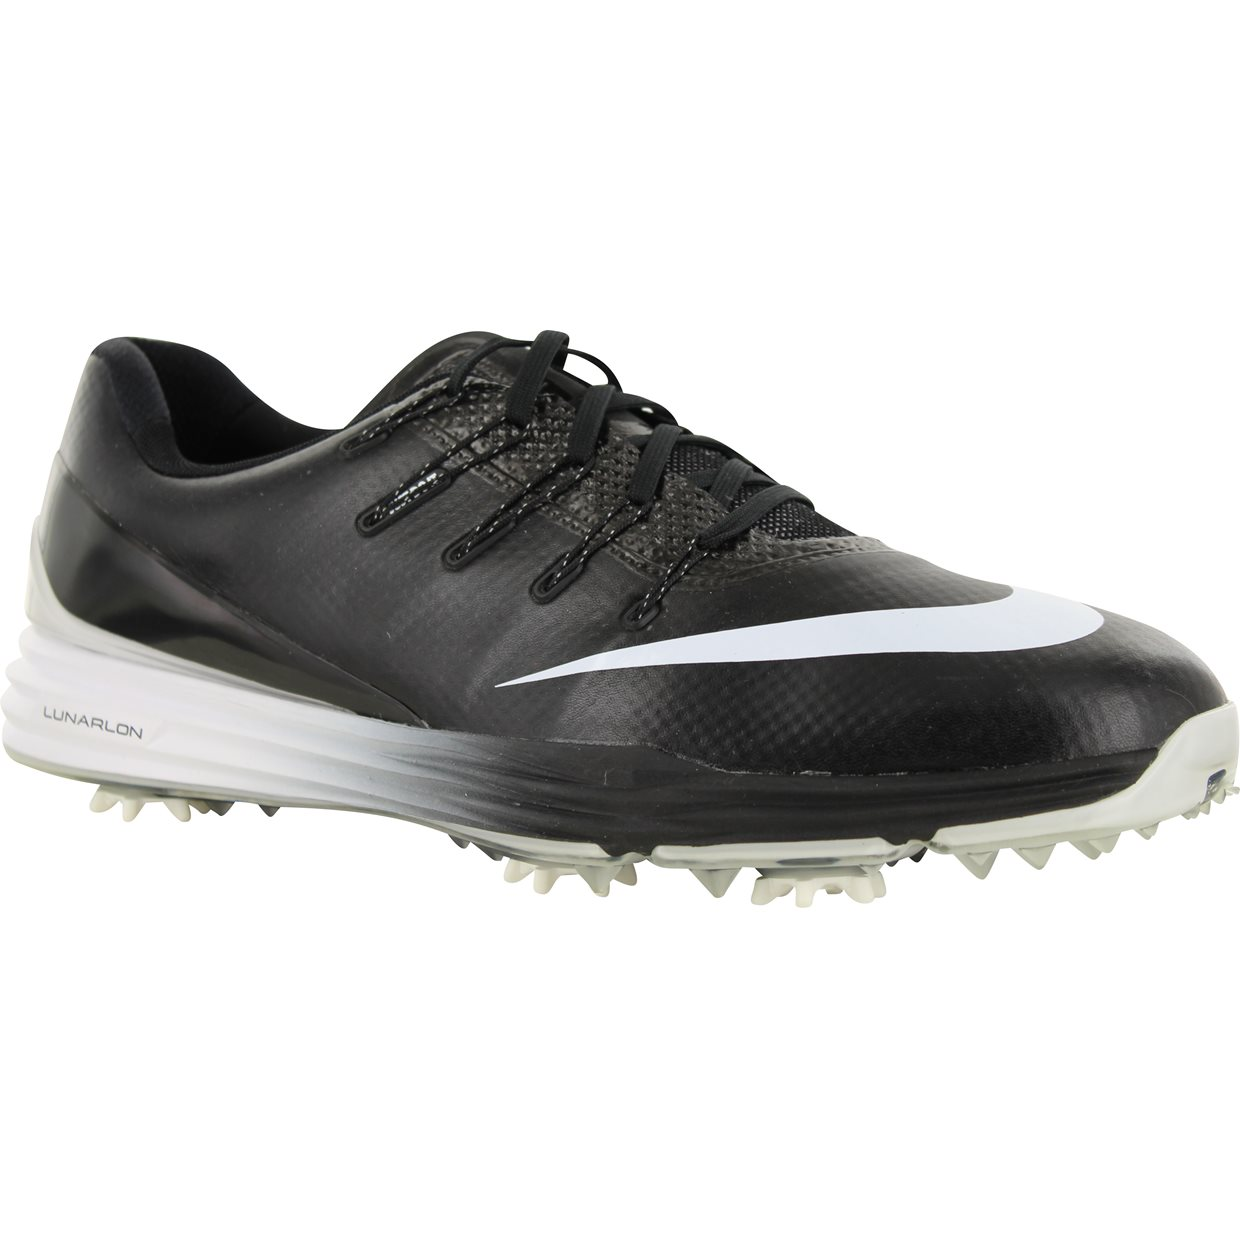 nike lunar 4 golf shoes at globalgolf